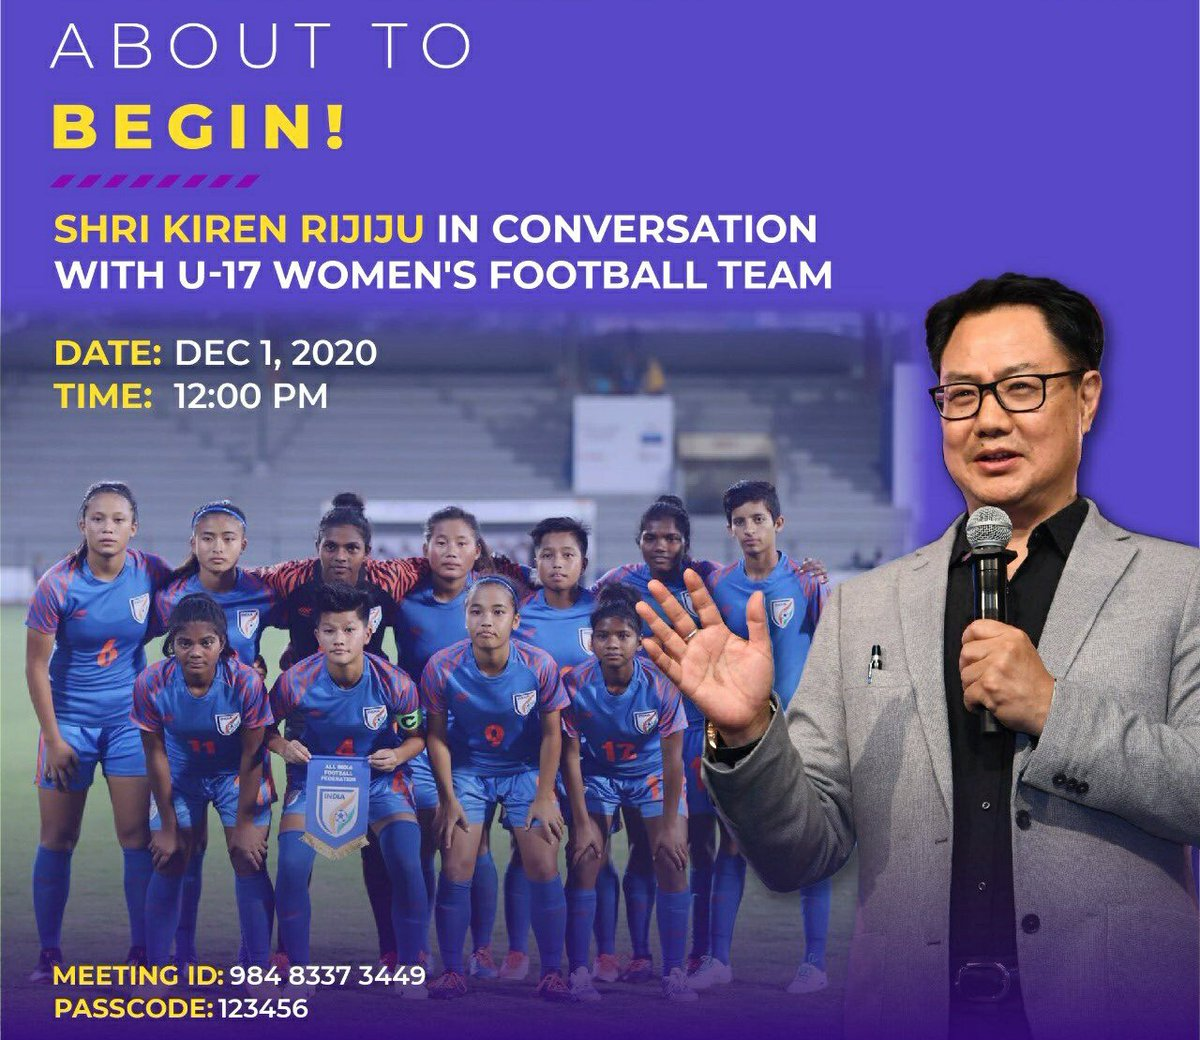 The young girls are very disappointed on the cancelation of FIFA U-17 Women's World Cup in India because it's rare opportunity in life to play for the country in FIFA Cup. But they are India's future in Women's Football. Looking forward for a lively conversation with the girls⚽️